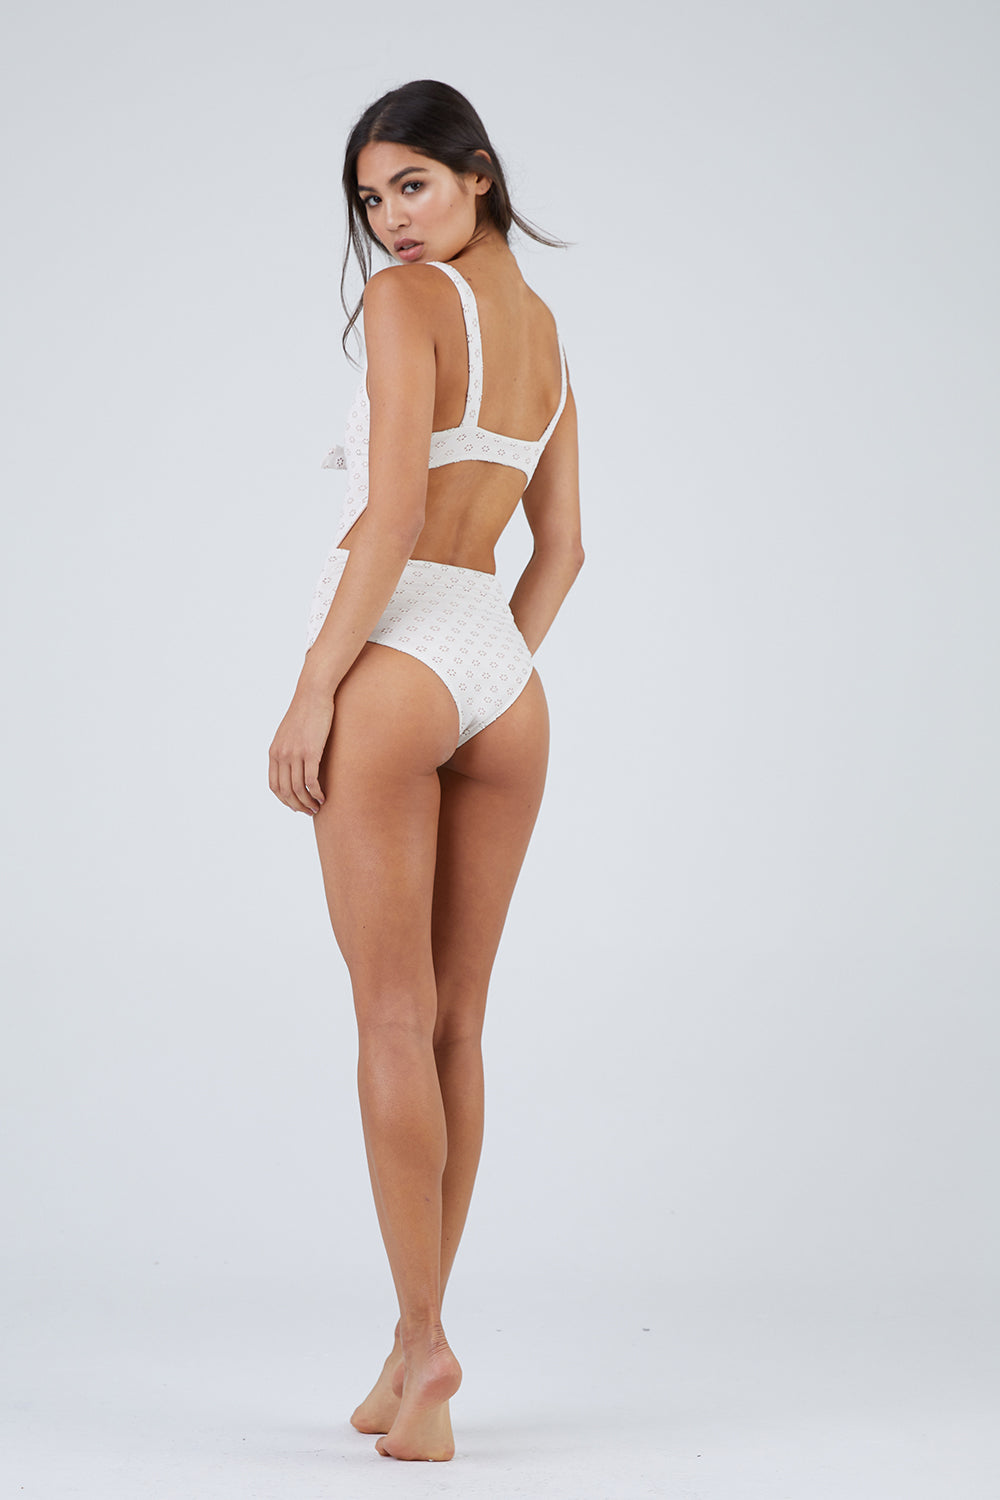 d689d8a4be ... AMUSE SOCIETY Gwen Eyelet Front Cut Out One Piece - Pebble - undefined  undefined